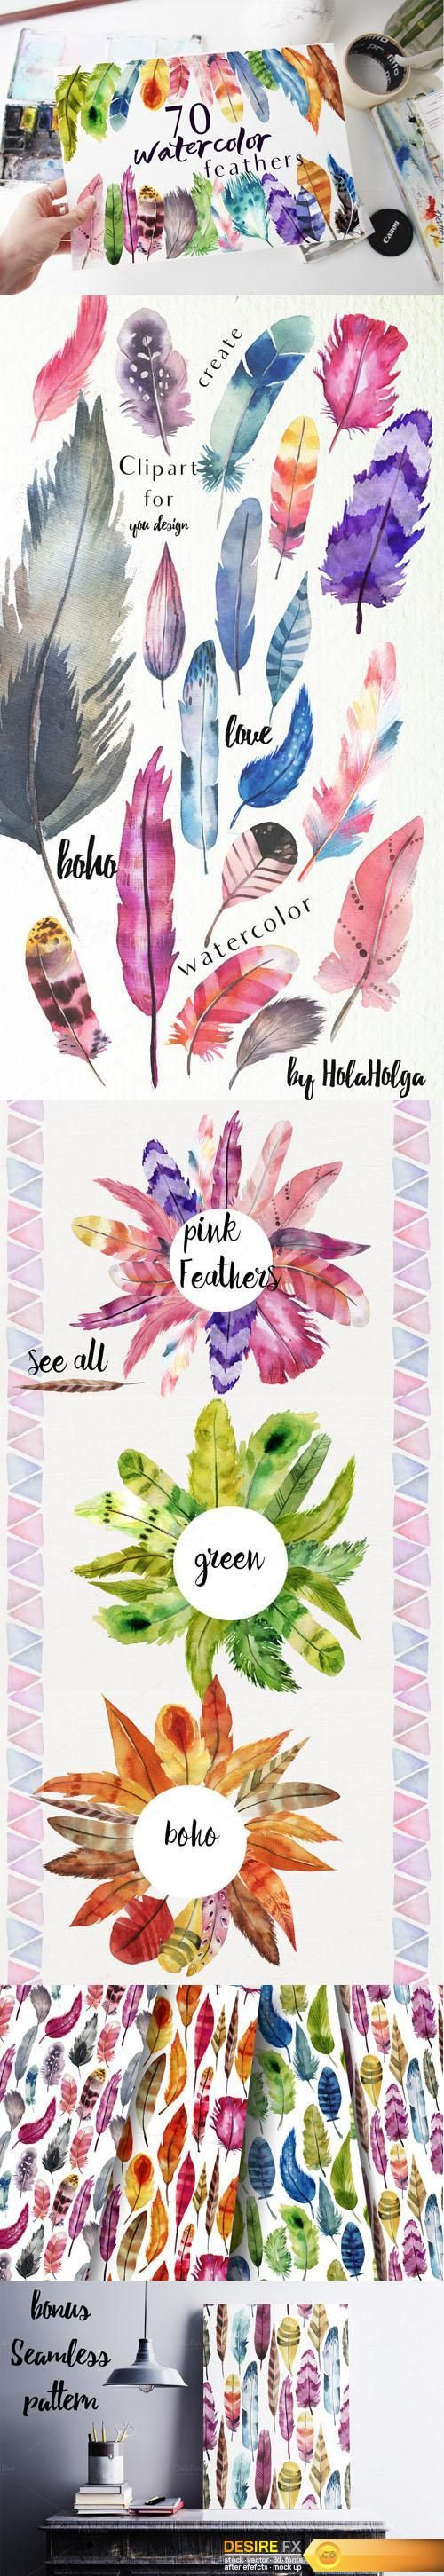 Find your Grapfix Desire With US http://www.desirefx.me/creativemarket-70-watercolor-feather-files-728540/